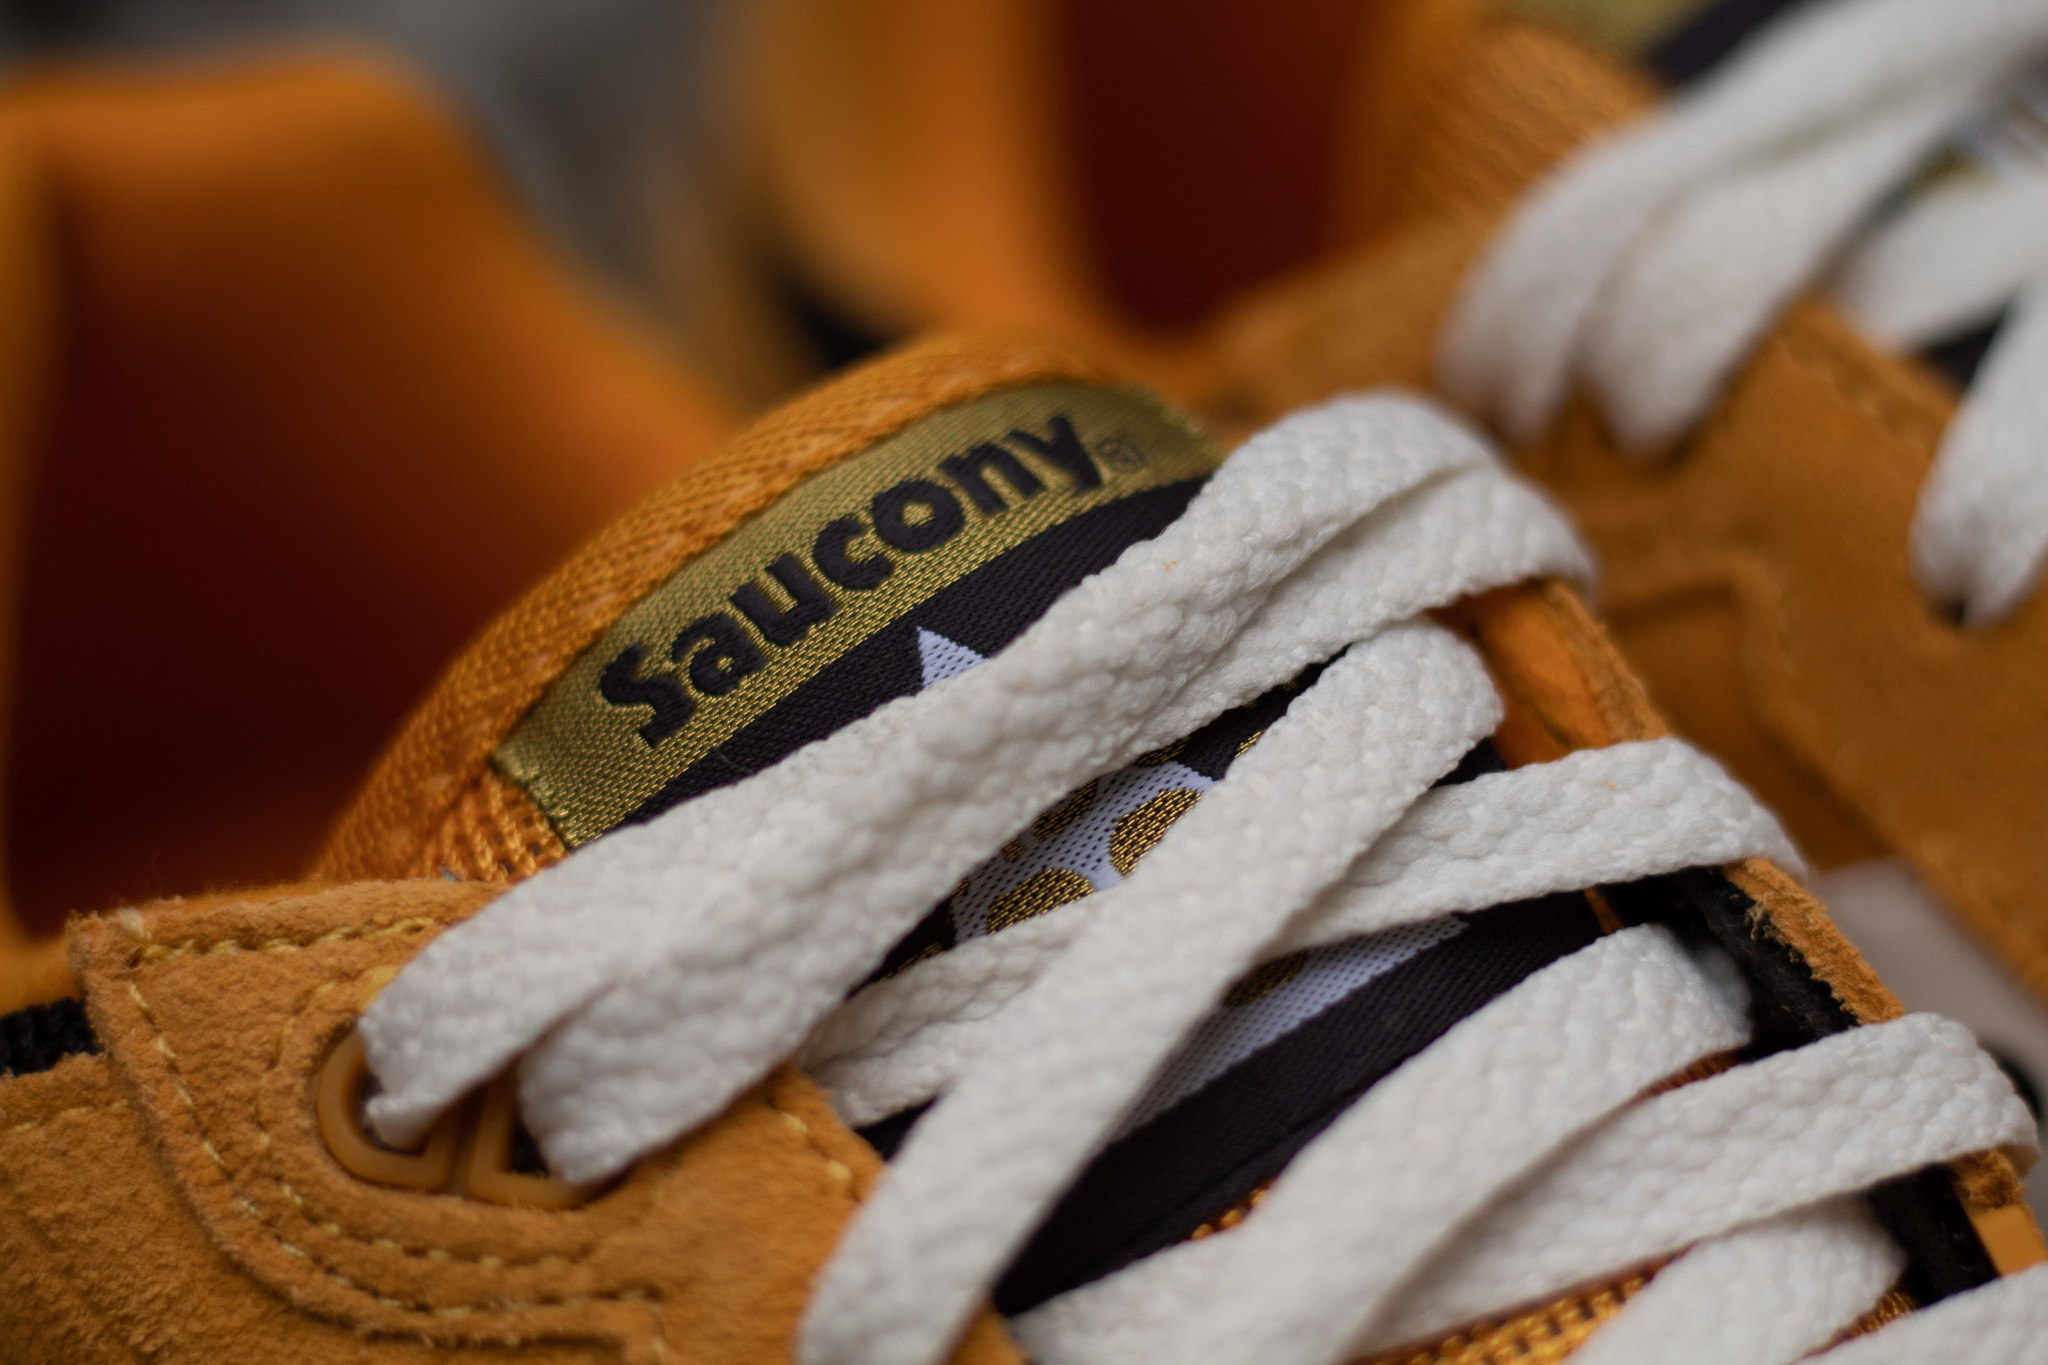 SAUCONY SHADOW 5000 Autumn Blaze/ Lim/ Noir